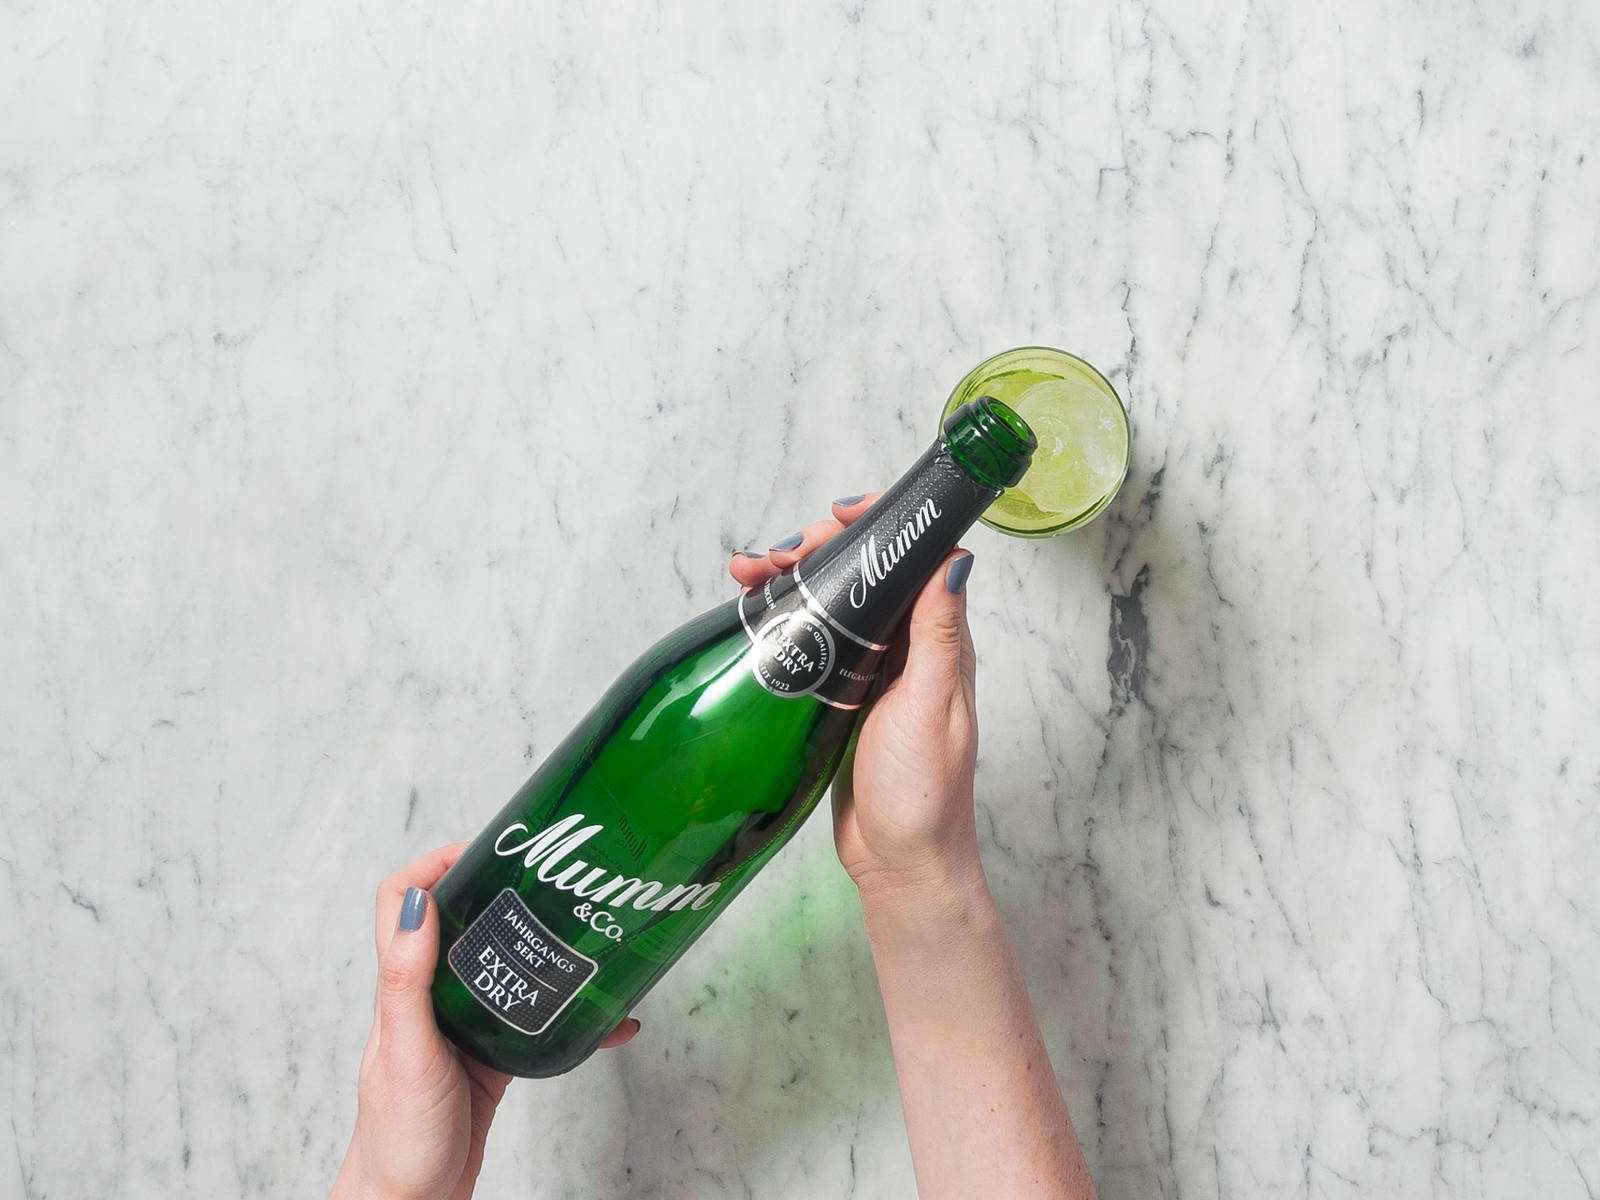 Arrange cucumber slice in a serving glass. Add cucumber water, ginger syrup, and lemon juice and stir. Fill glass with ice and pour over extra dry sparkling wine. Garnish with lemon peel. Enjoy!